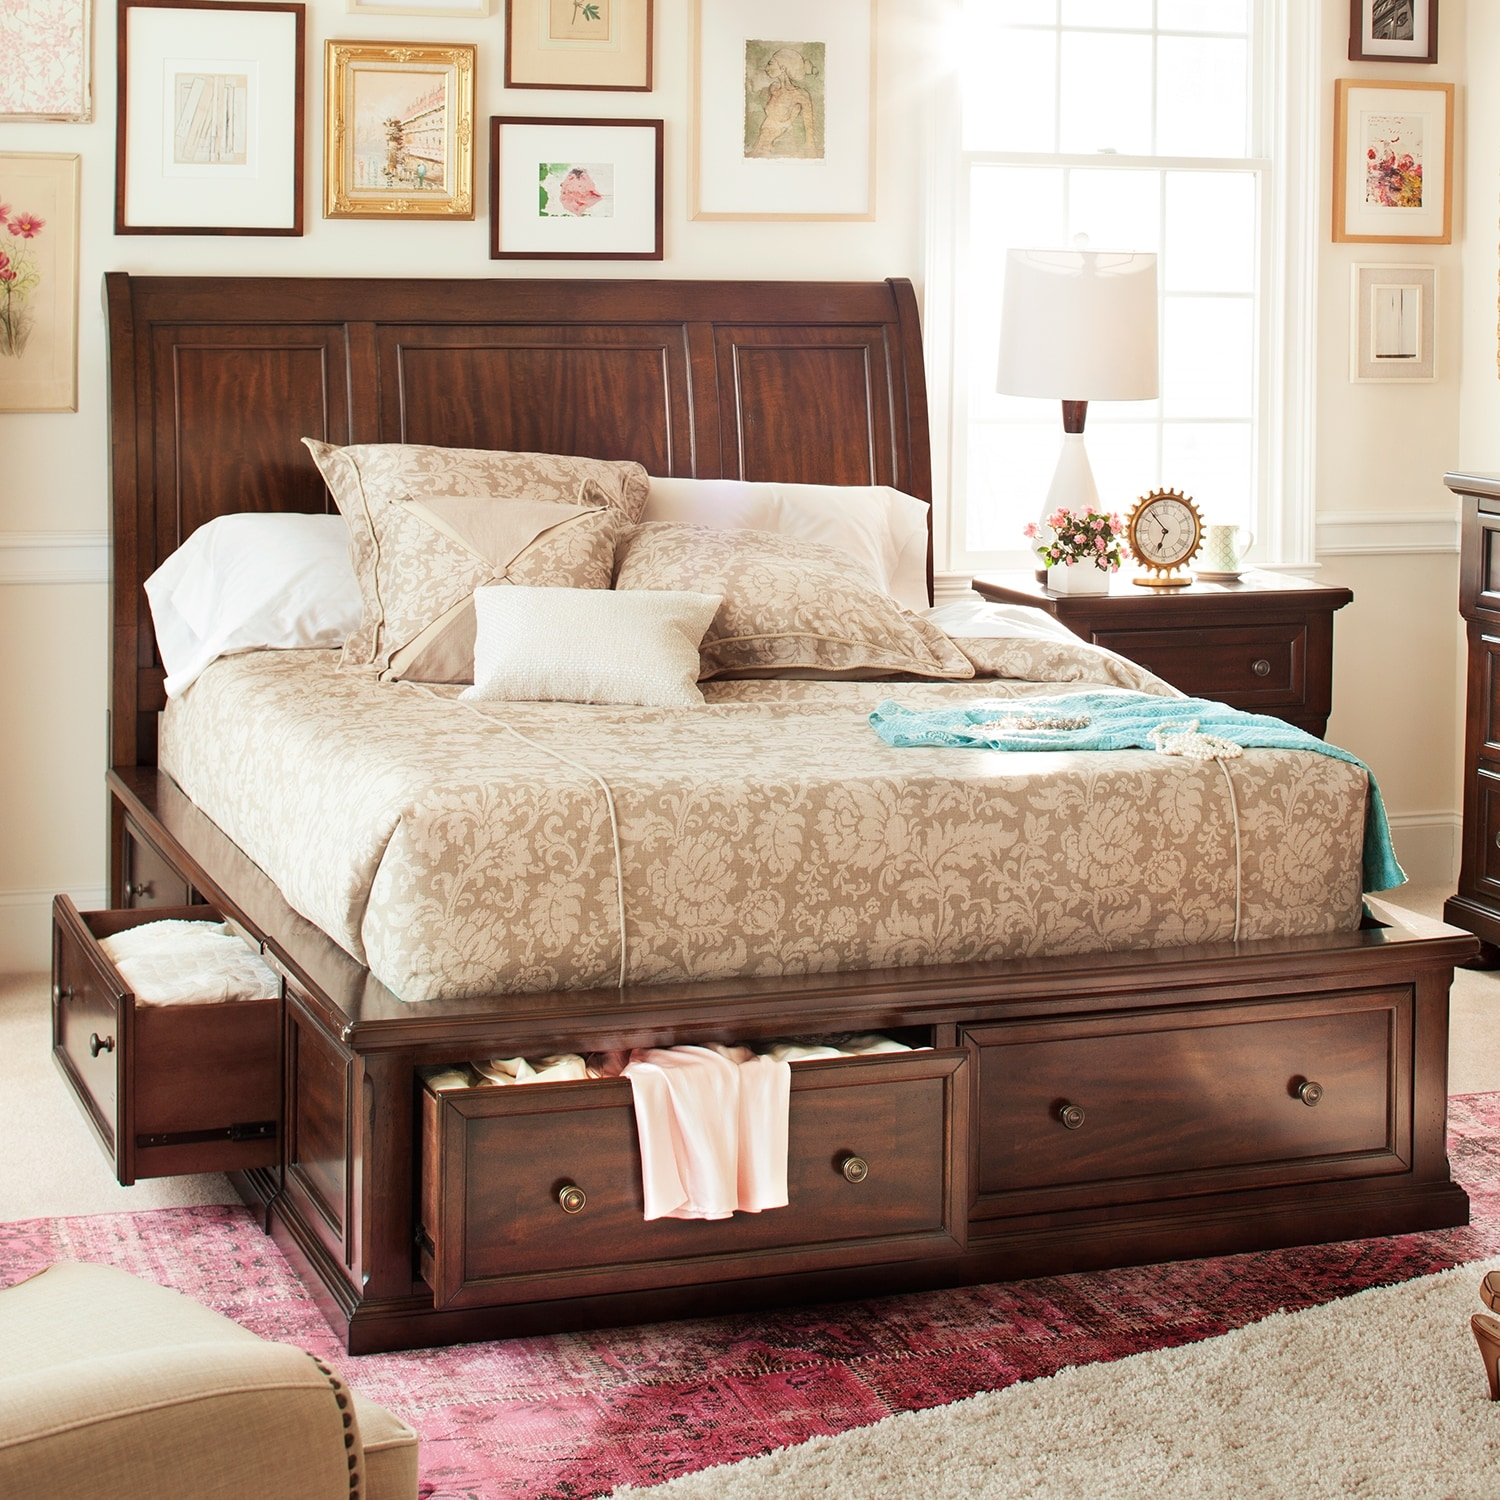 Hanover queen storage bed cherry value city furniture - Value city furniture bedroom sets ...